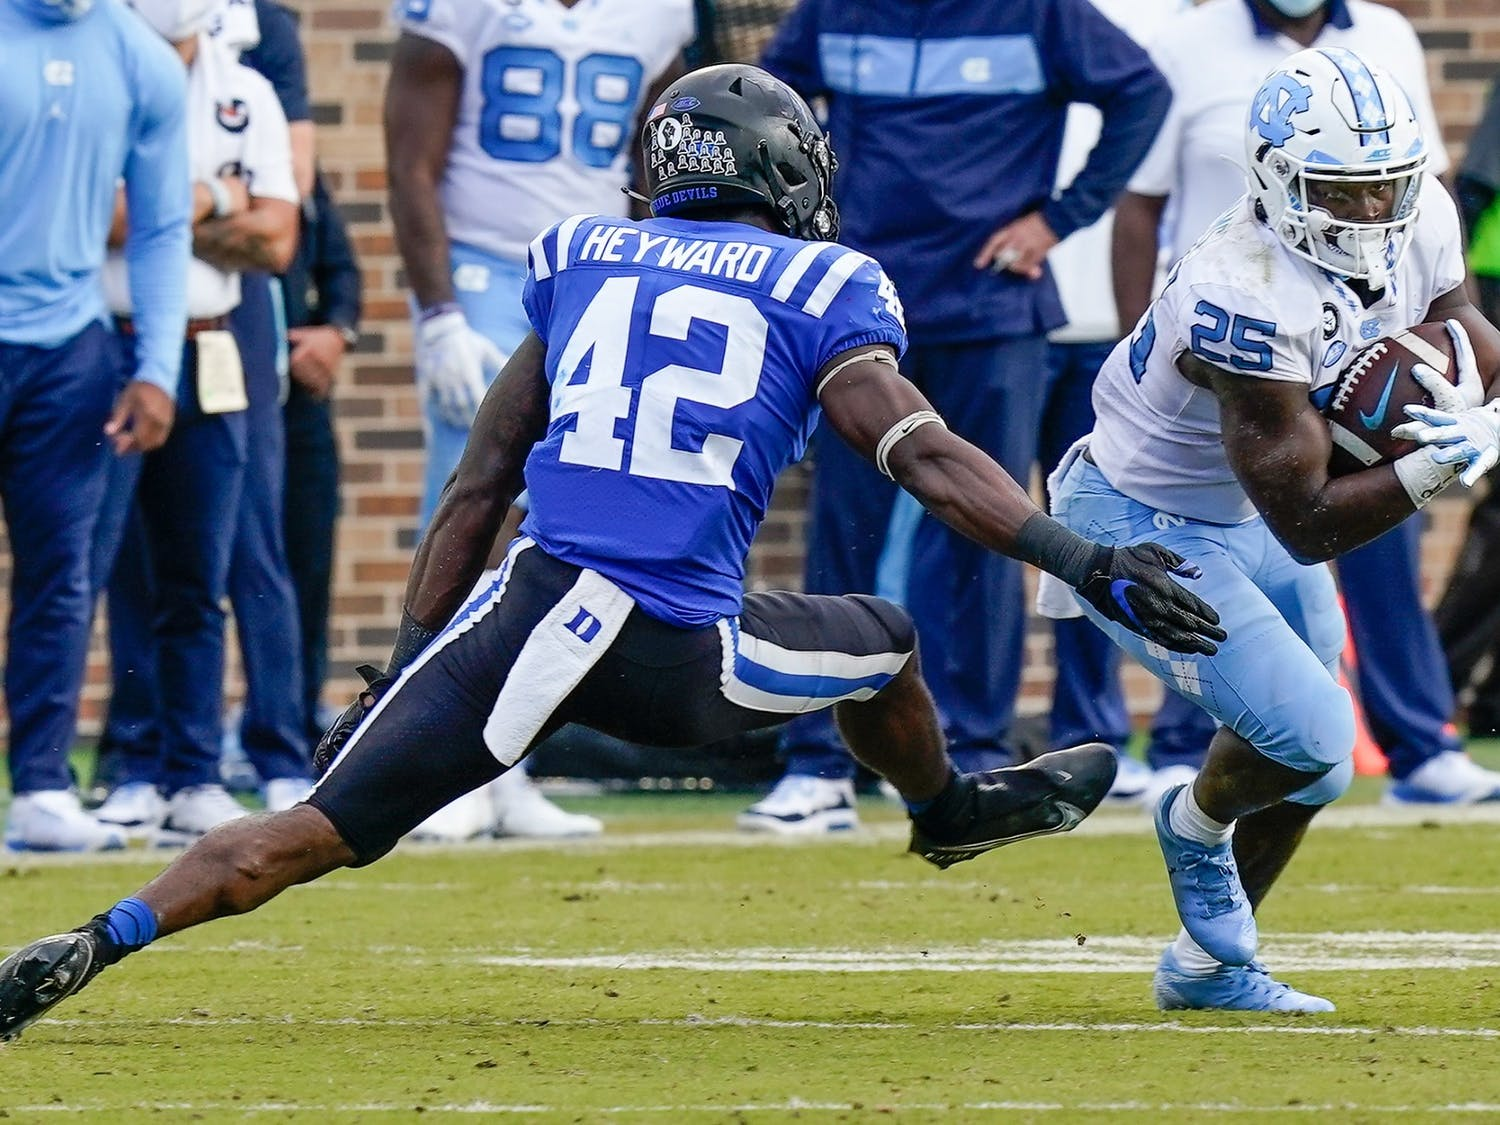 Duke couldn't contain North Carolina's run game, allowing the Tar Heels to break free for 338 rushing yards Saturday.